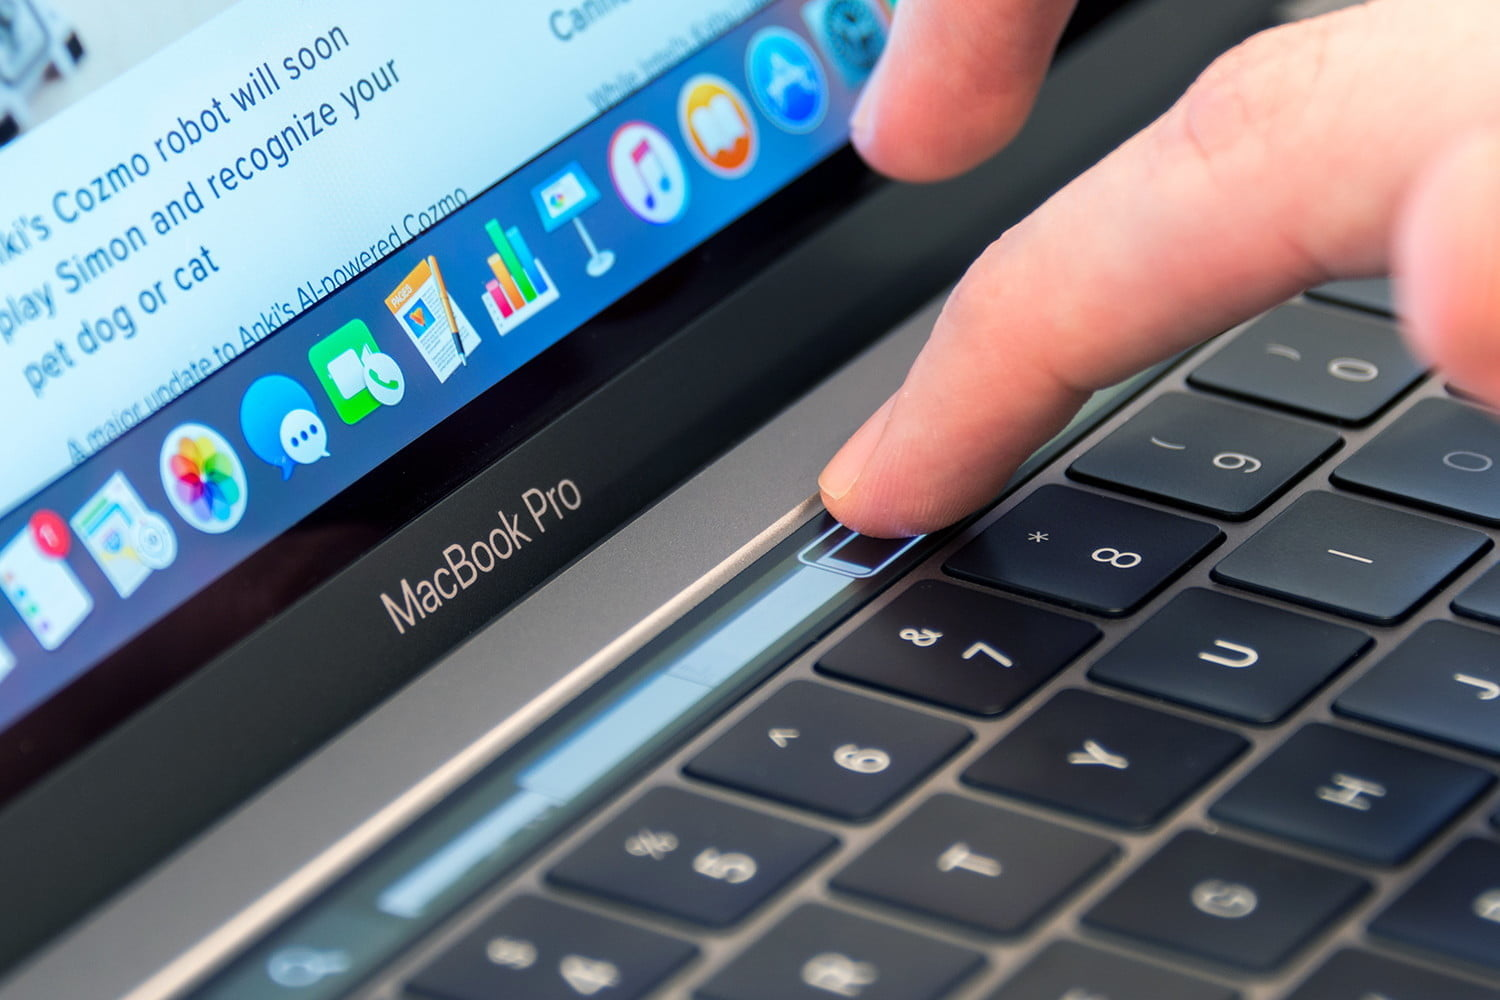 macbook pro t2 coprocessor security issues 2016 touchbar1